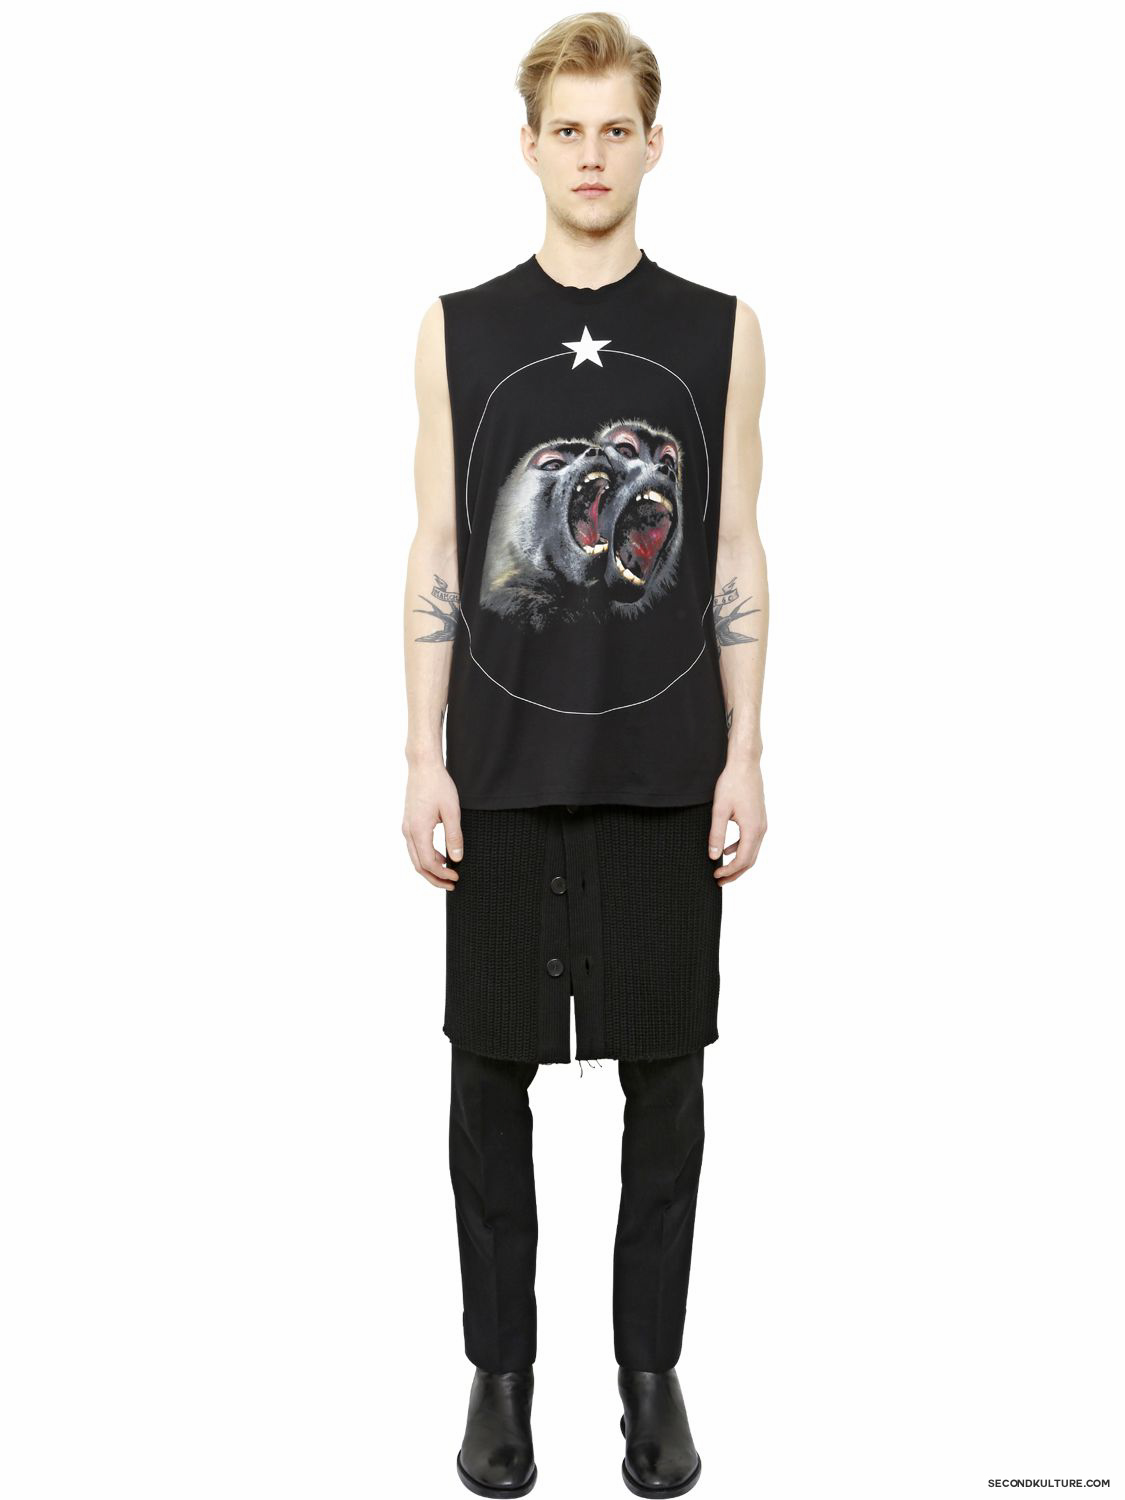 Givenchy-Monkey-Star-Print-Sleeveless-T-Shirt-Fall-Winter-2015-2